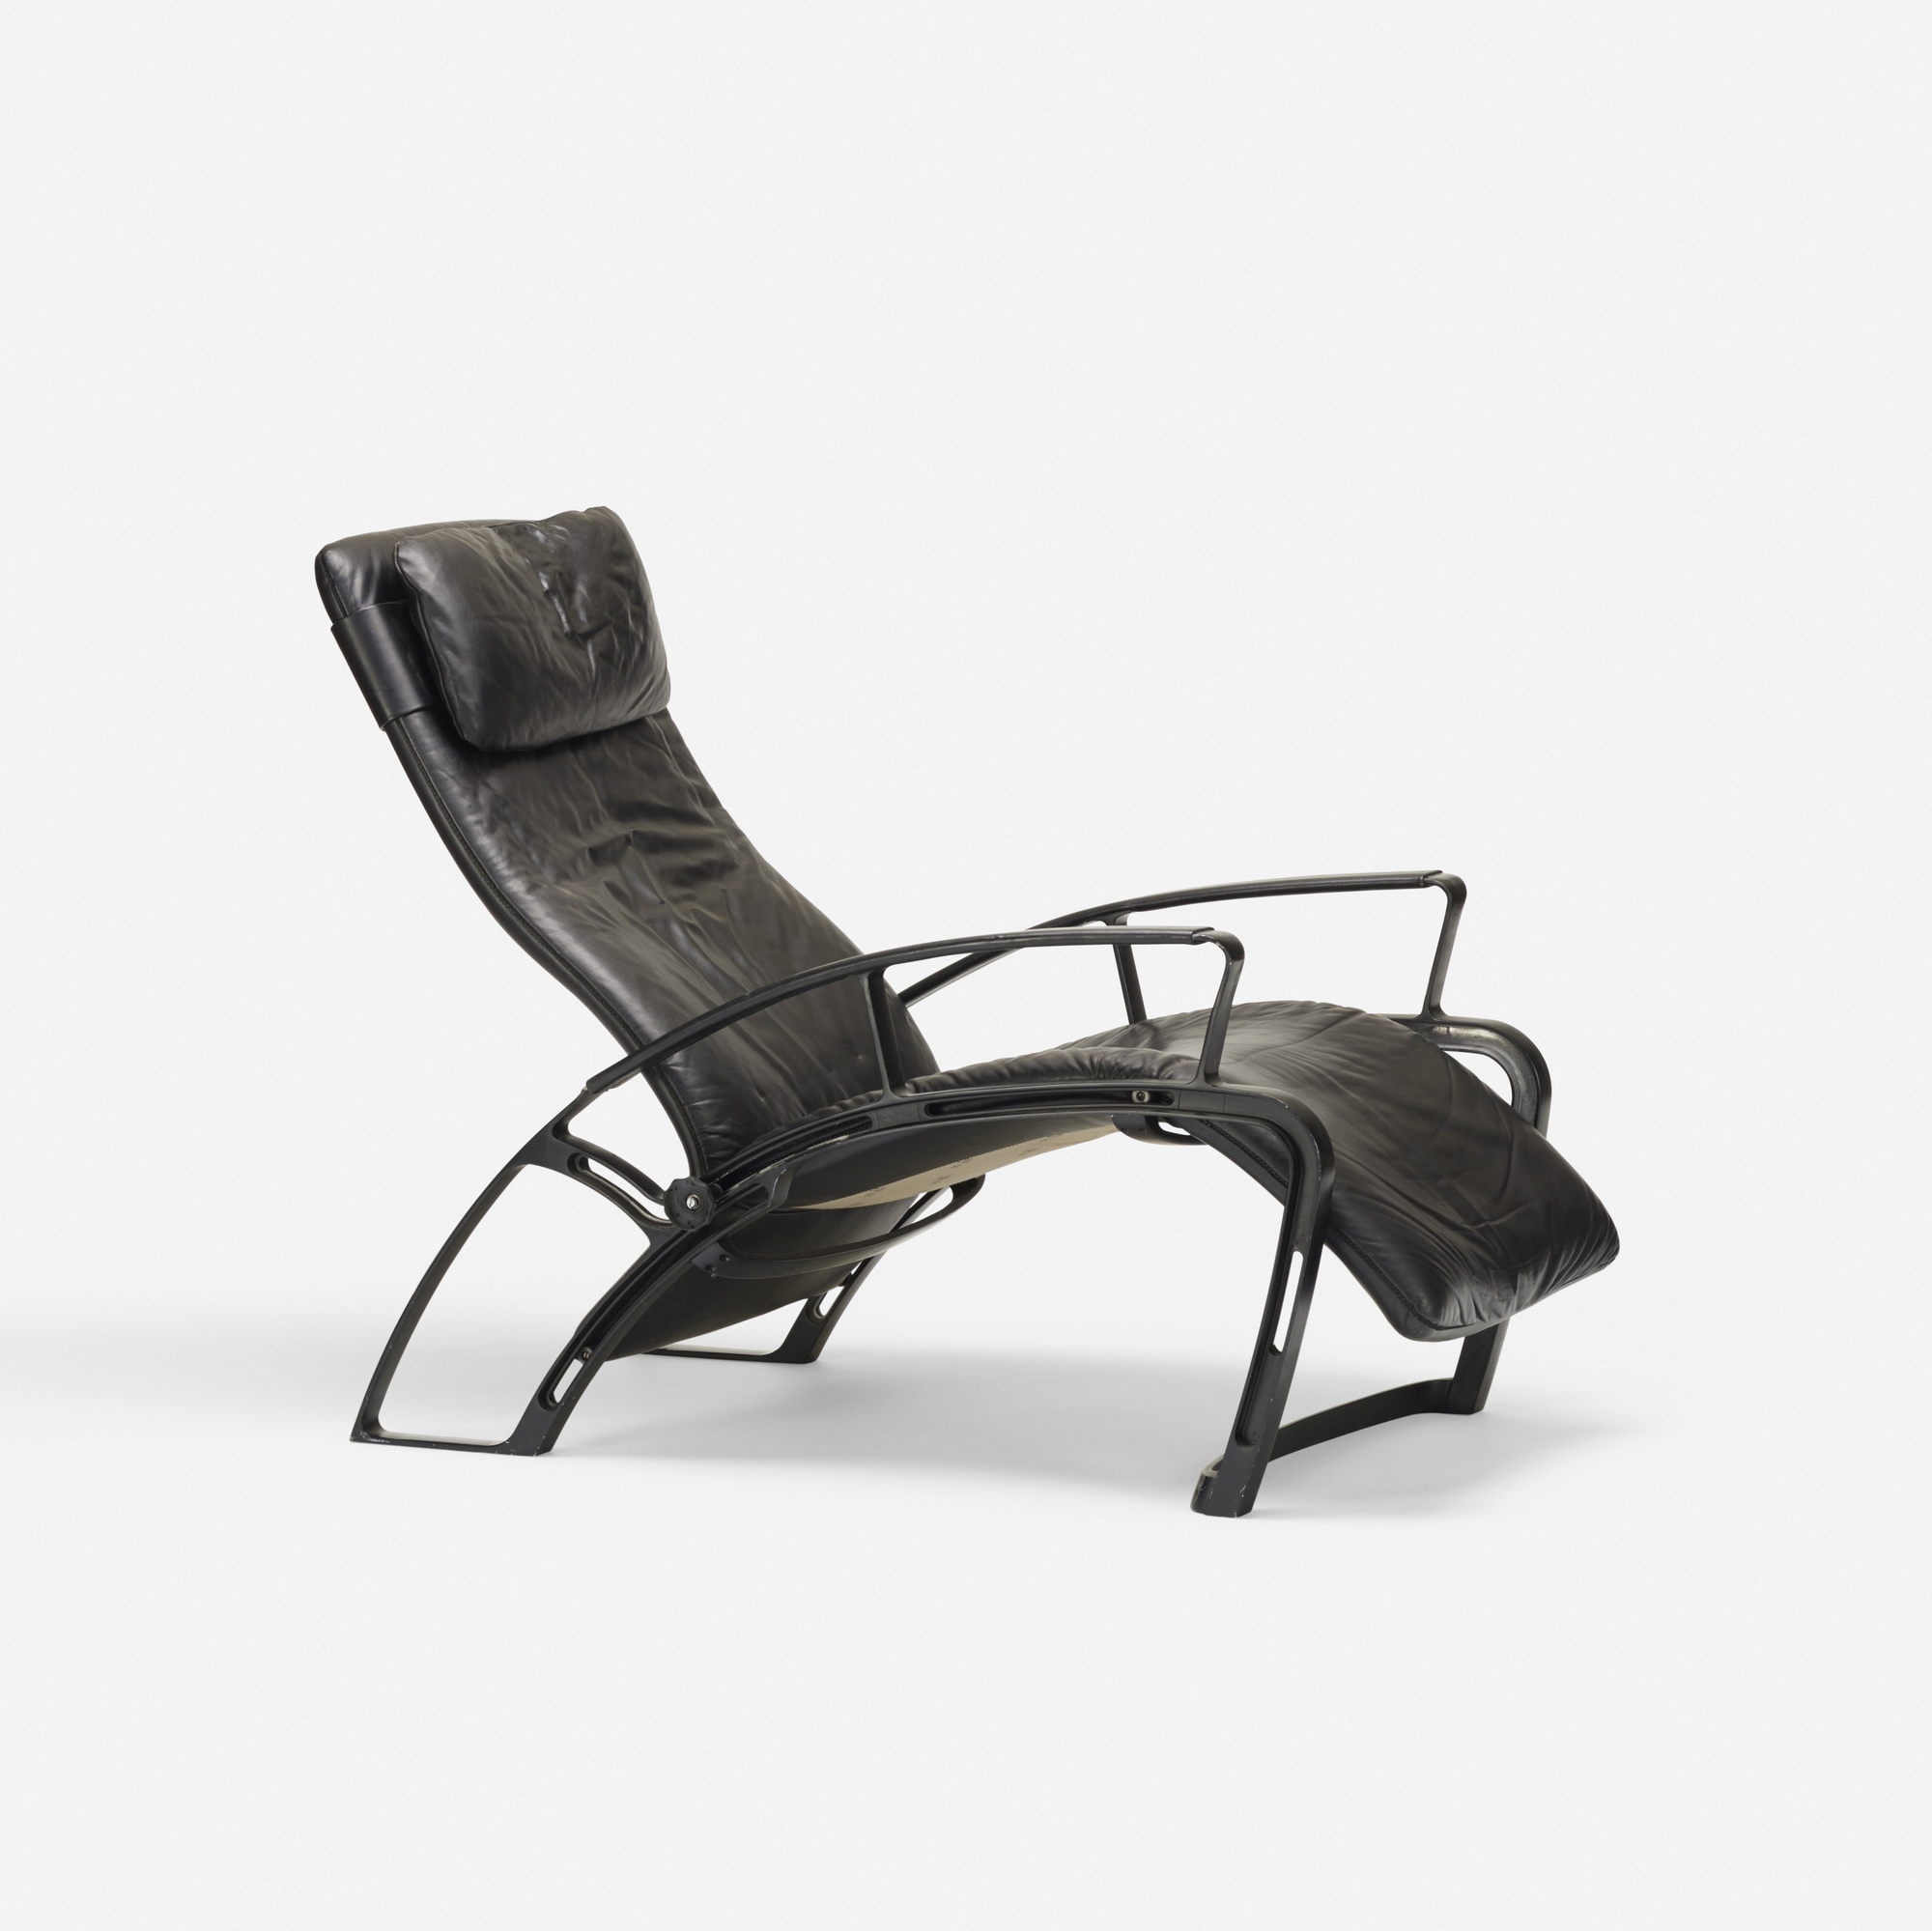 668: Ferdinand A. Porsche / Porsche chair, model IP84S (1 of 3)